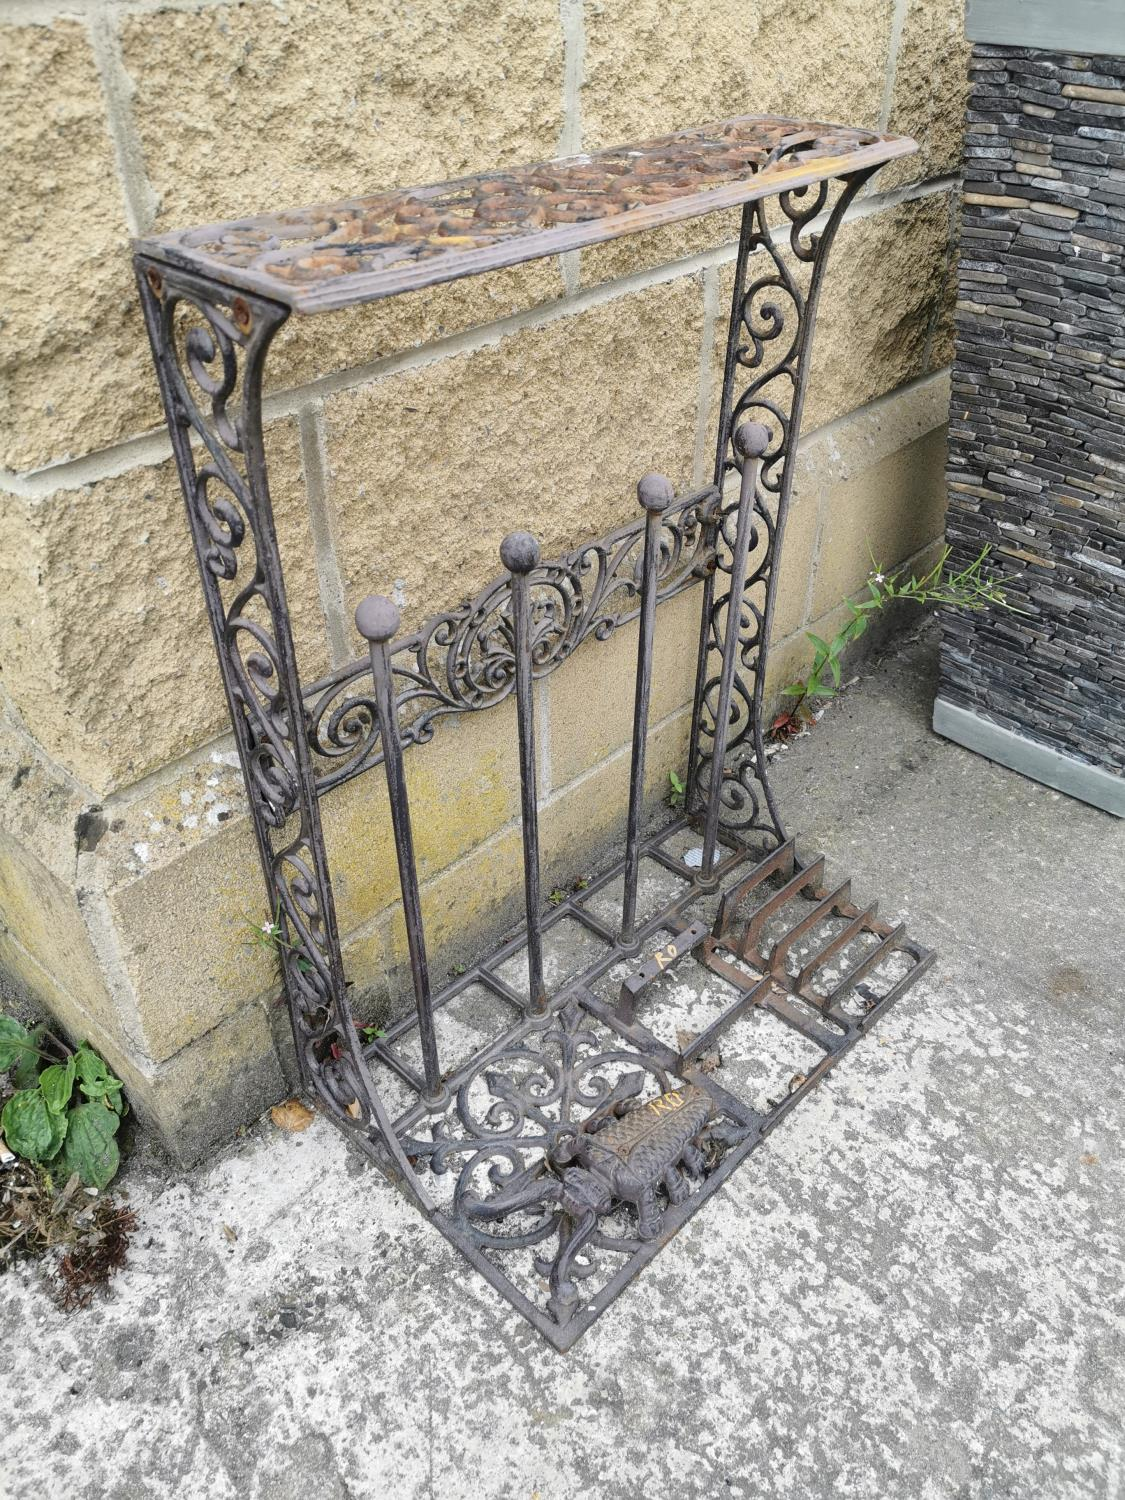 Decorative cast iron boot rack and foot scrapper. - Image 2 of 2